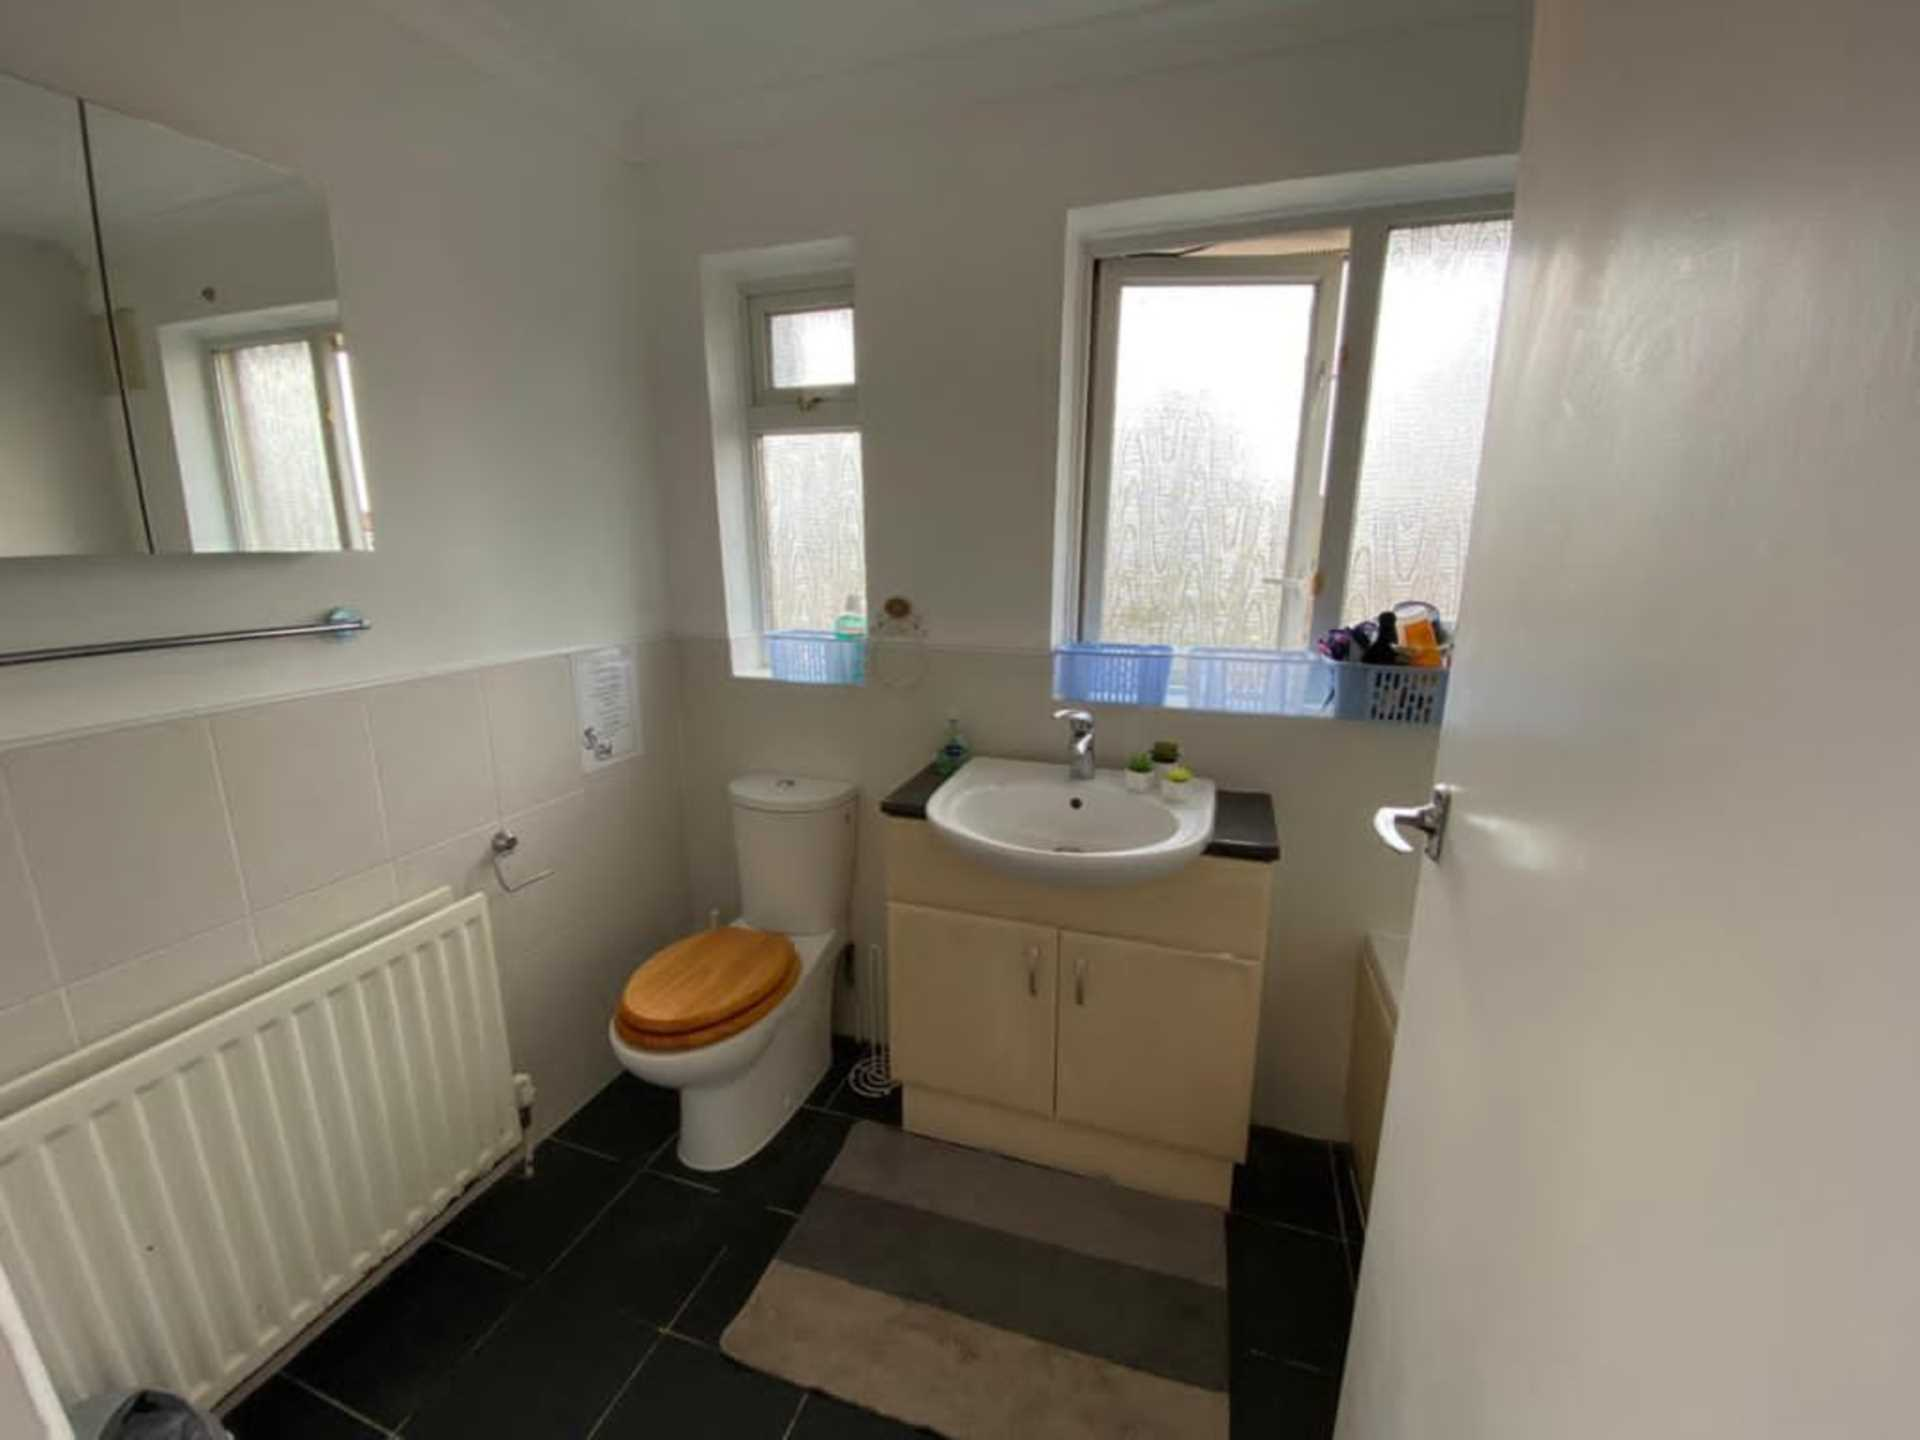 Room 4, Bryanstone Close, Stoughton, Guildford, GU2 9UJ, Image 22